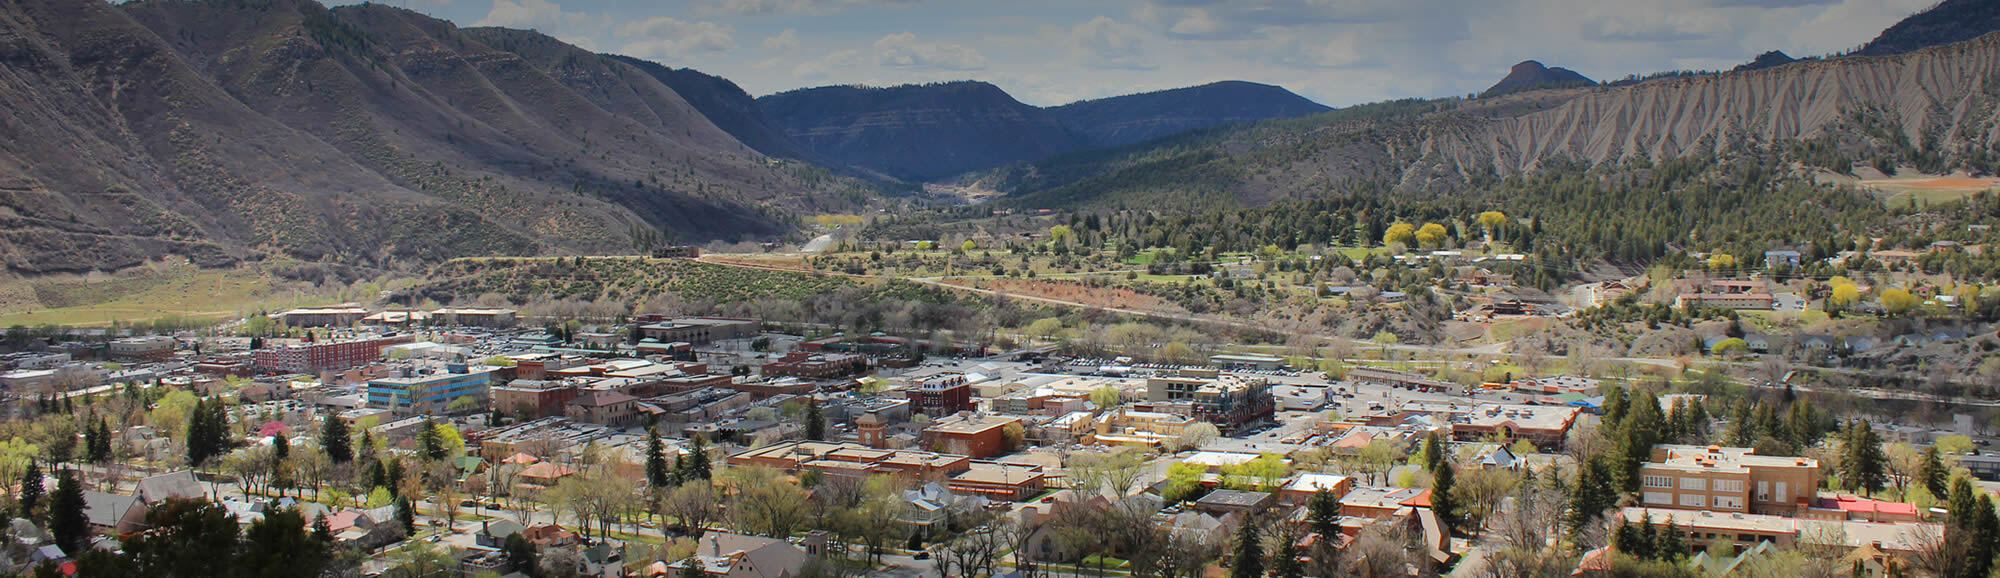 Animas Surgical Hospital Physician Owned Hospital In Durango Co